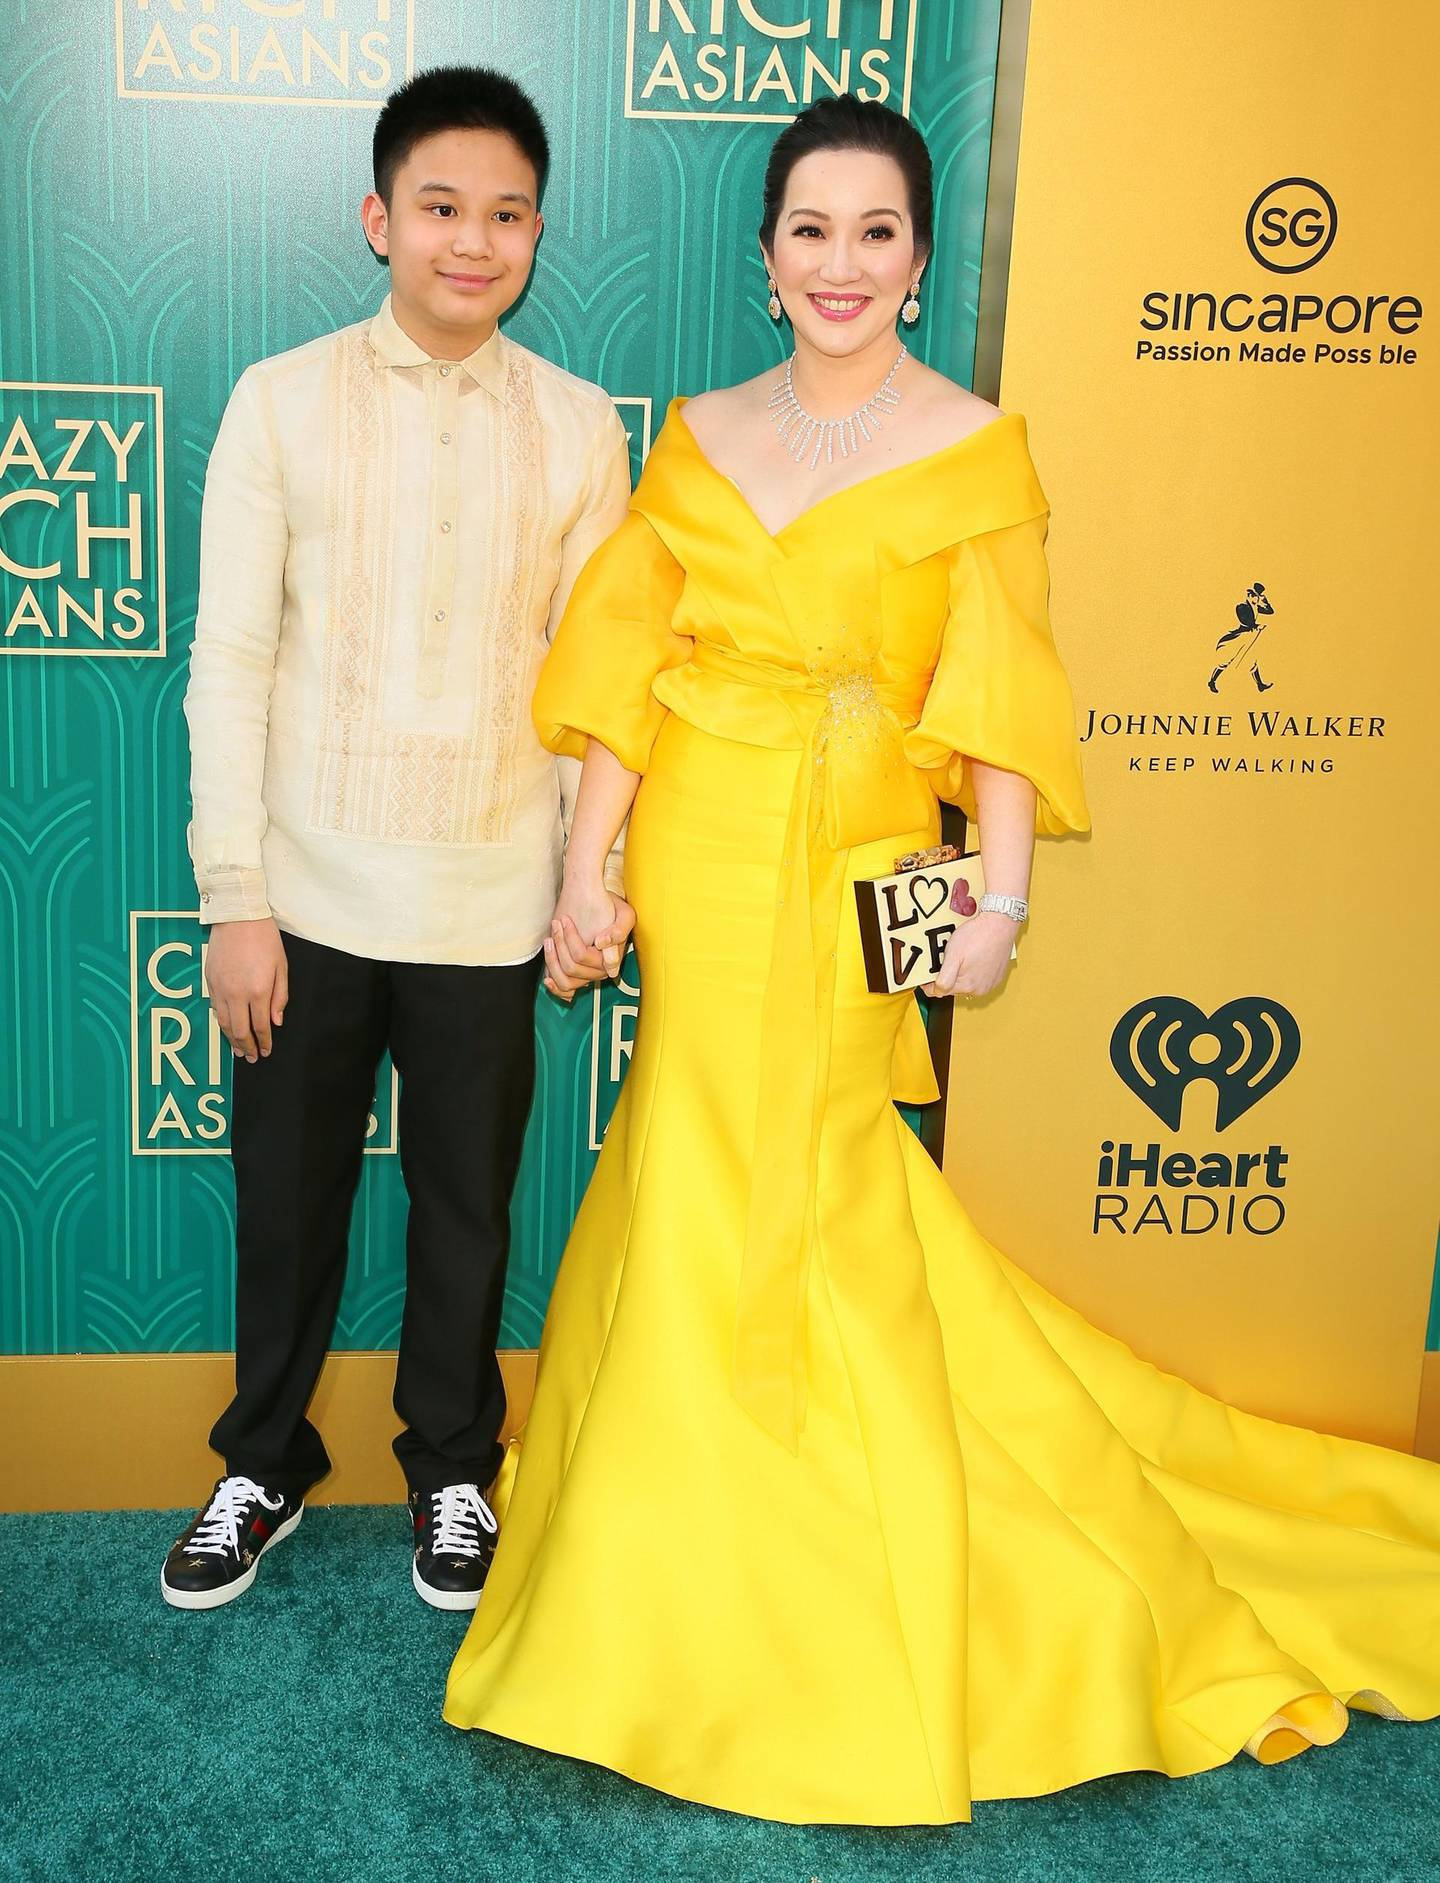 """Actress Kris Aquino (R) and her son actor Bimby Aquino Yap attends the premiere of Warner Bros Pictures' """"Crazy Rich Asians"""" in Hollywood, California, on August 7, 2018.  / AFP PHOTO / JEAN-BAPTISTE LACROIX"""